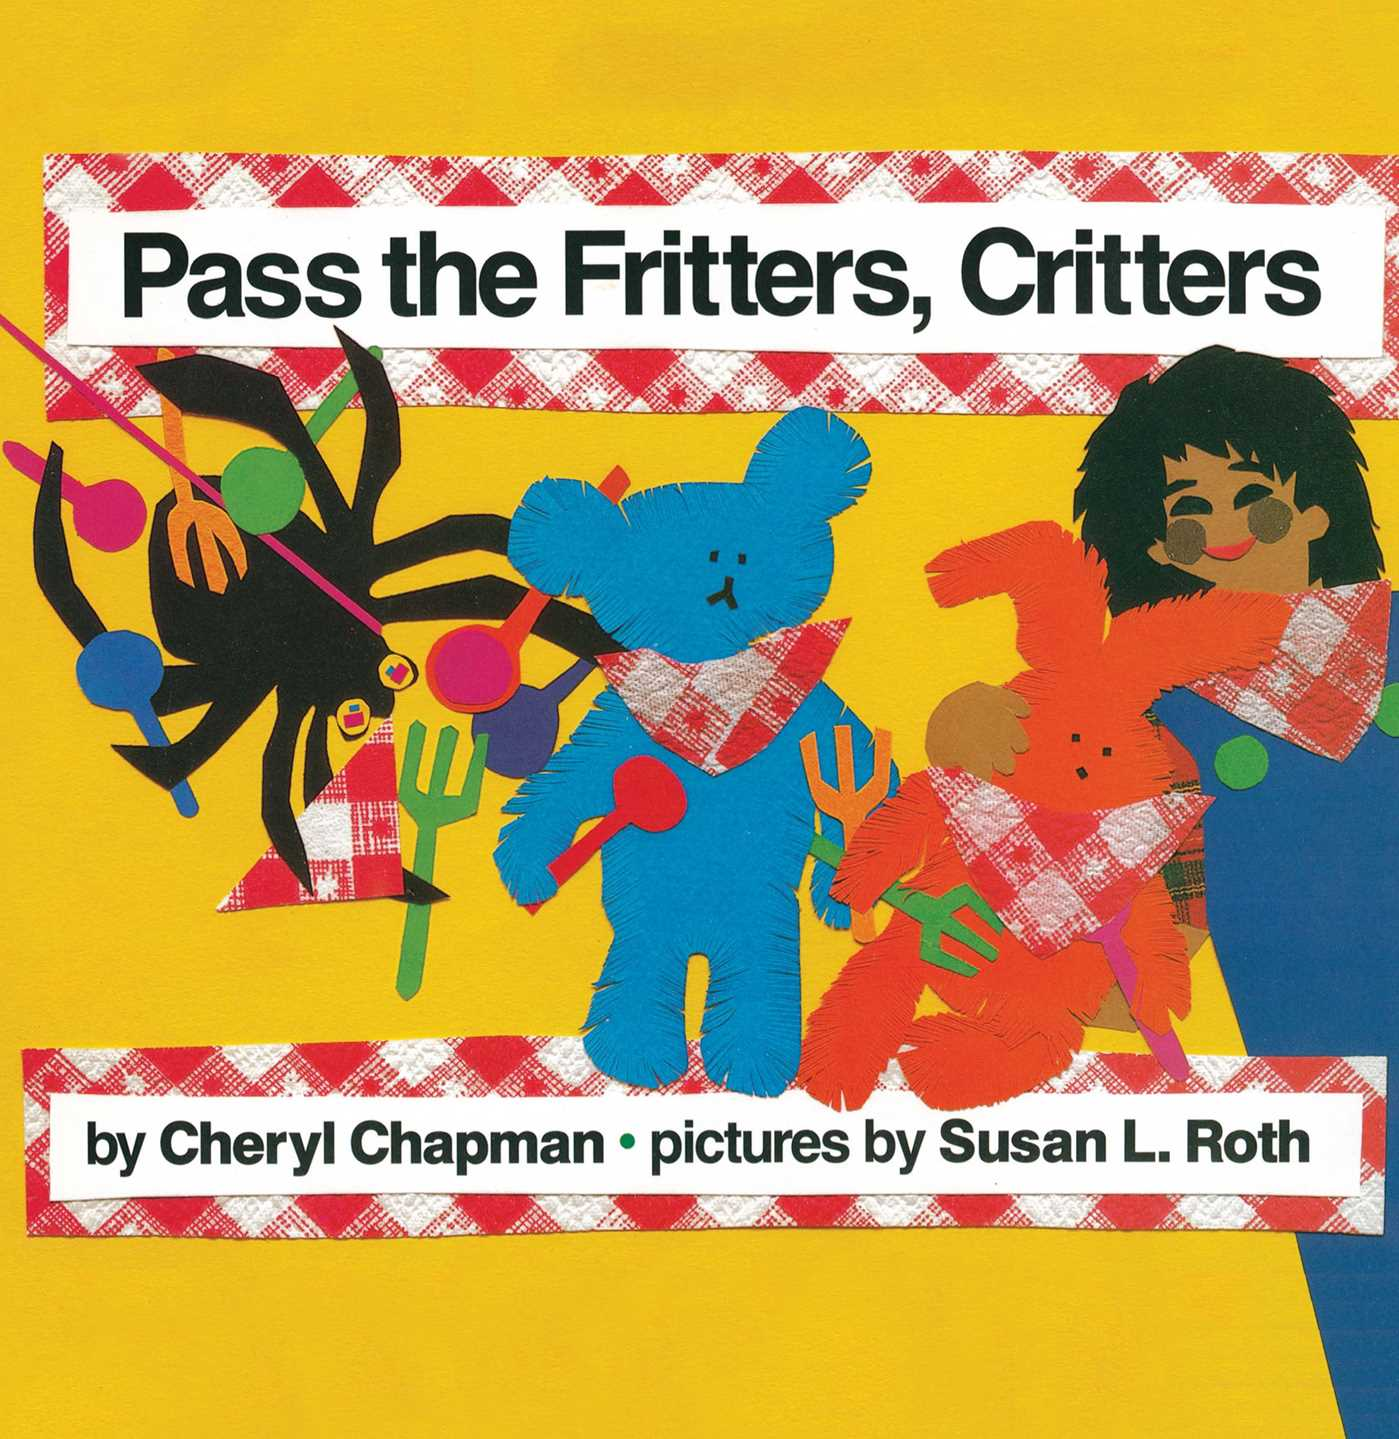 Pass-the-fritters-critters-9781416961604_hr